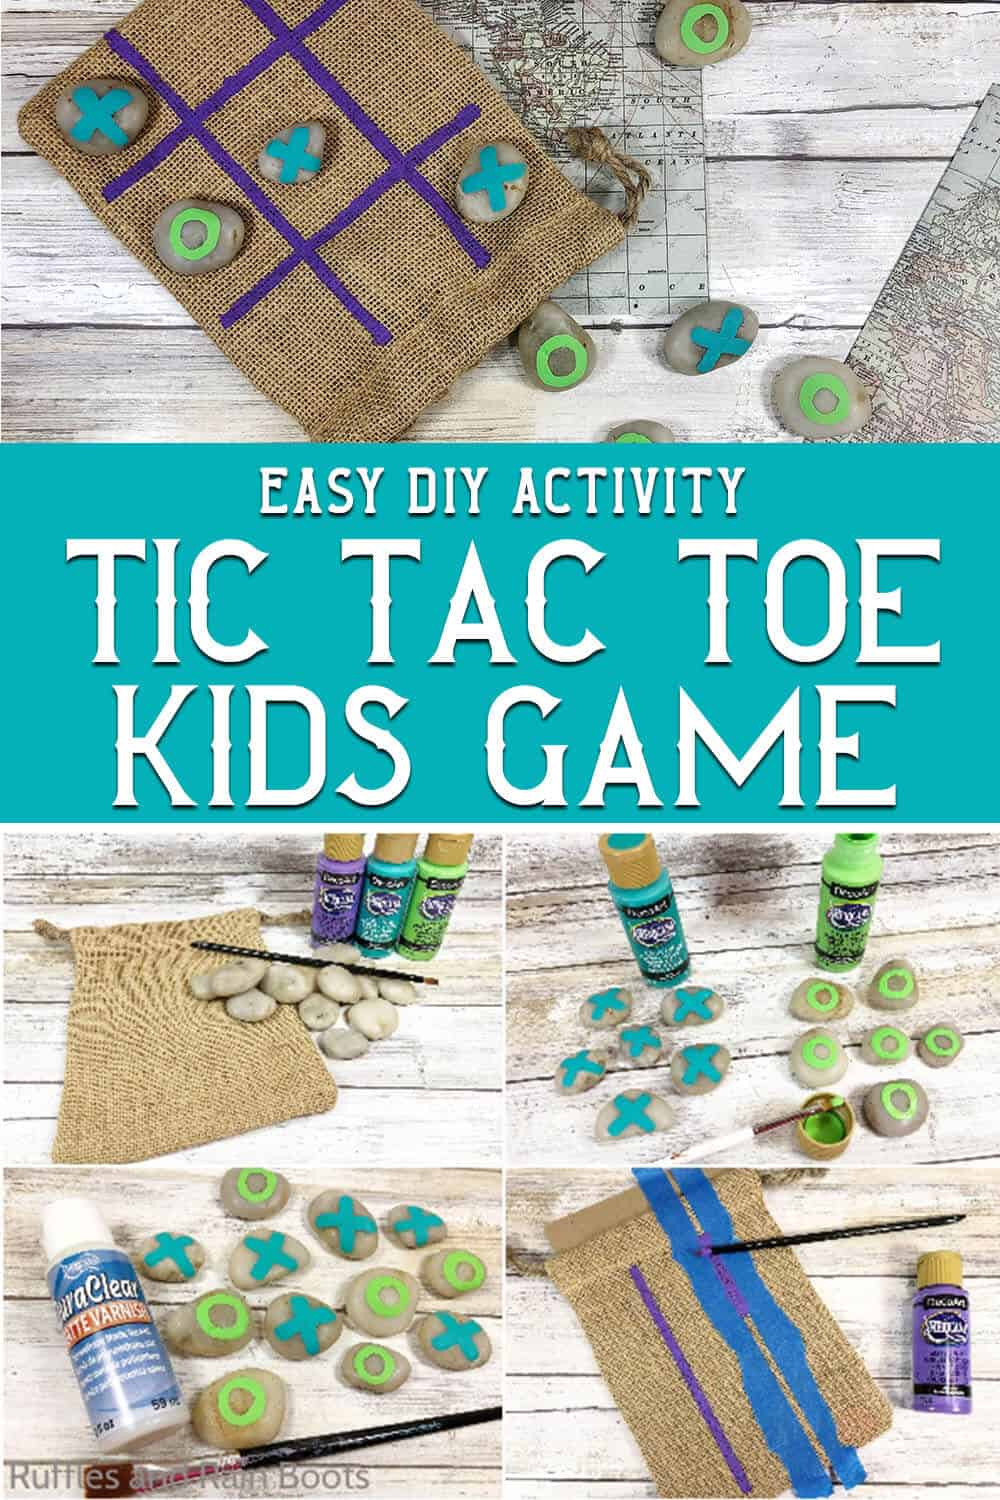 photo collage of easy kids activity boredom buster craft with text which reads easy diy activity tic tac toe kids game